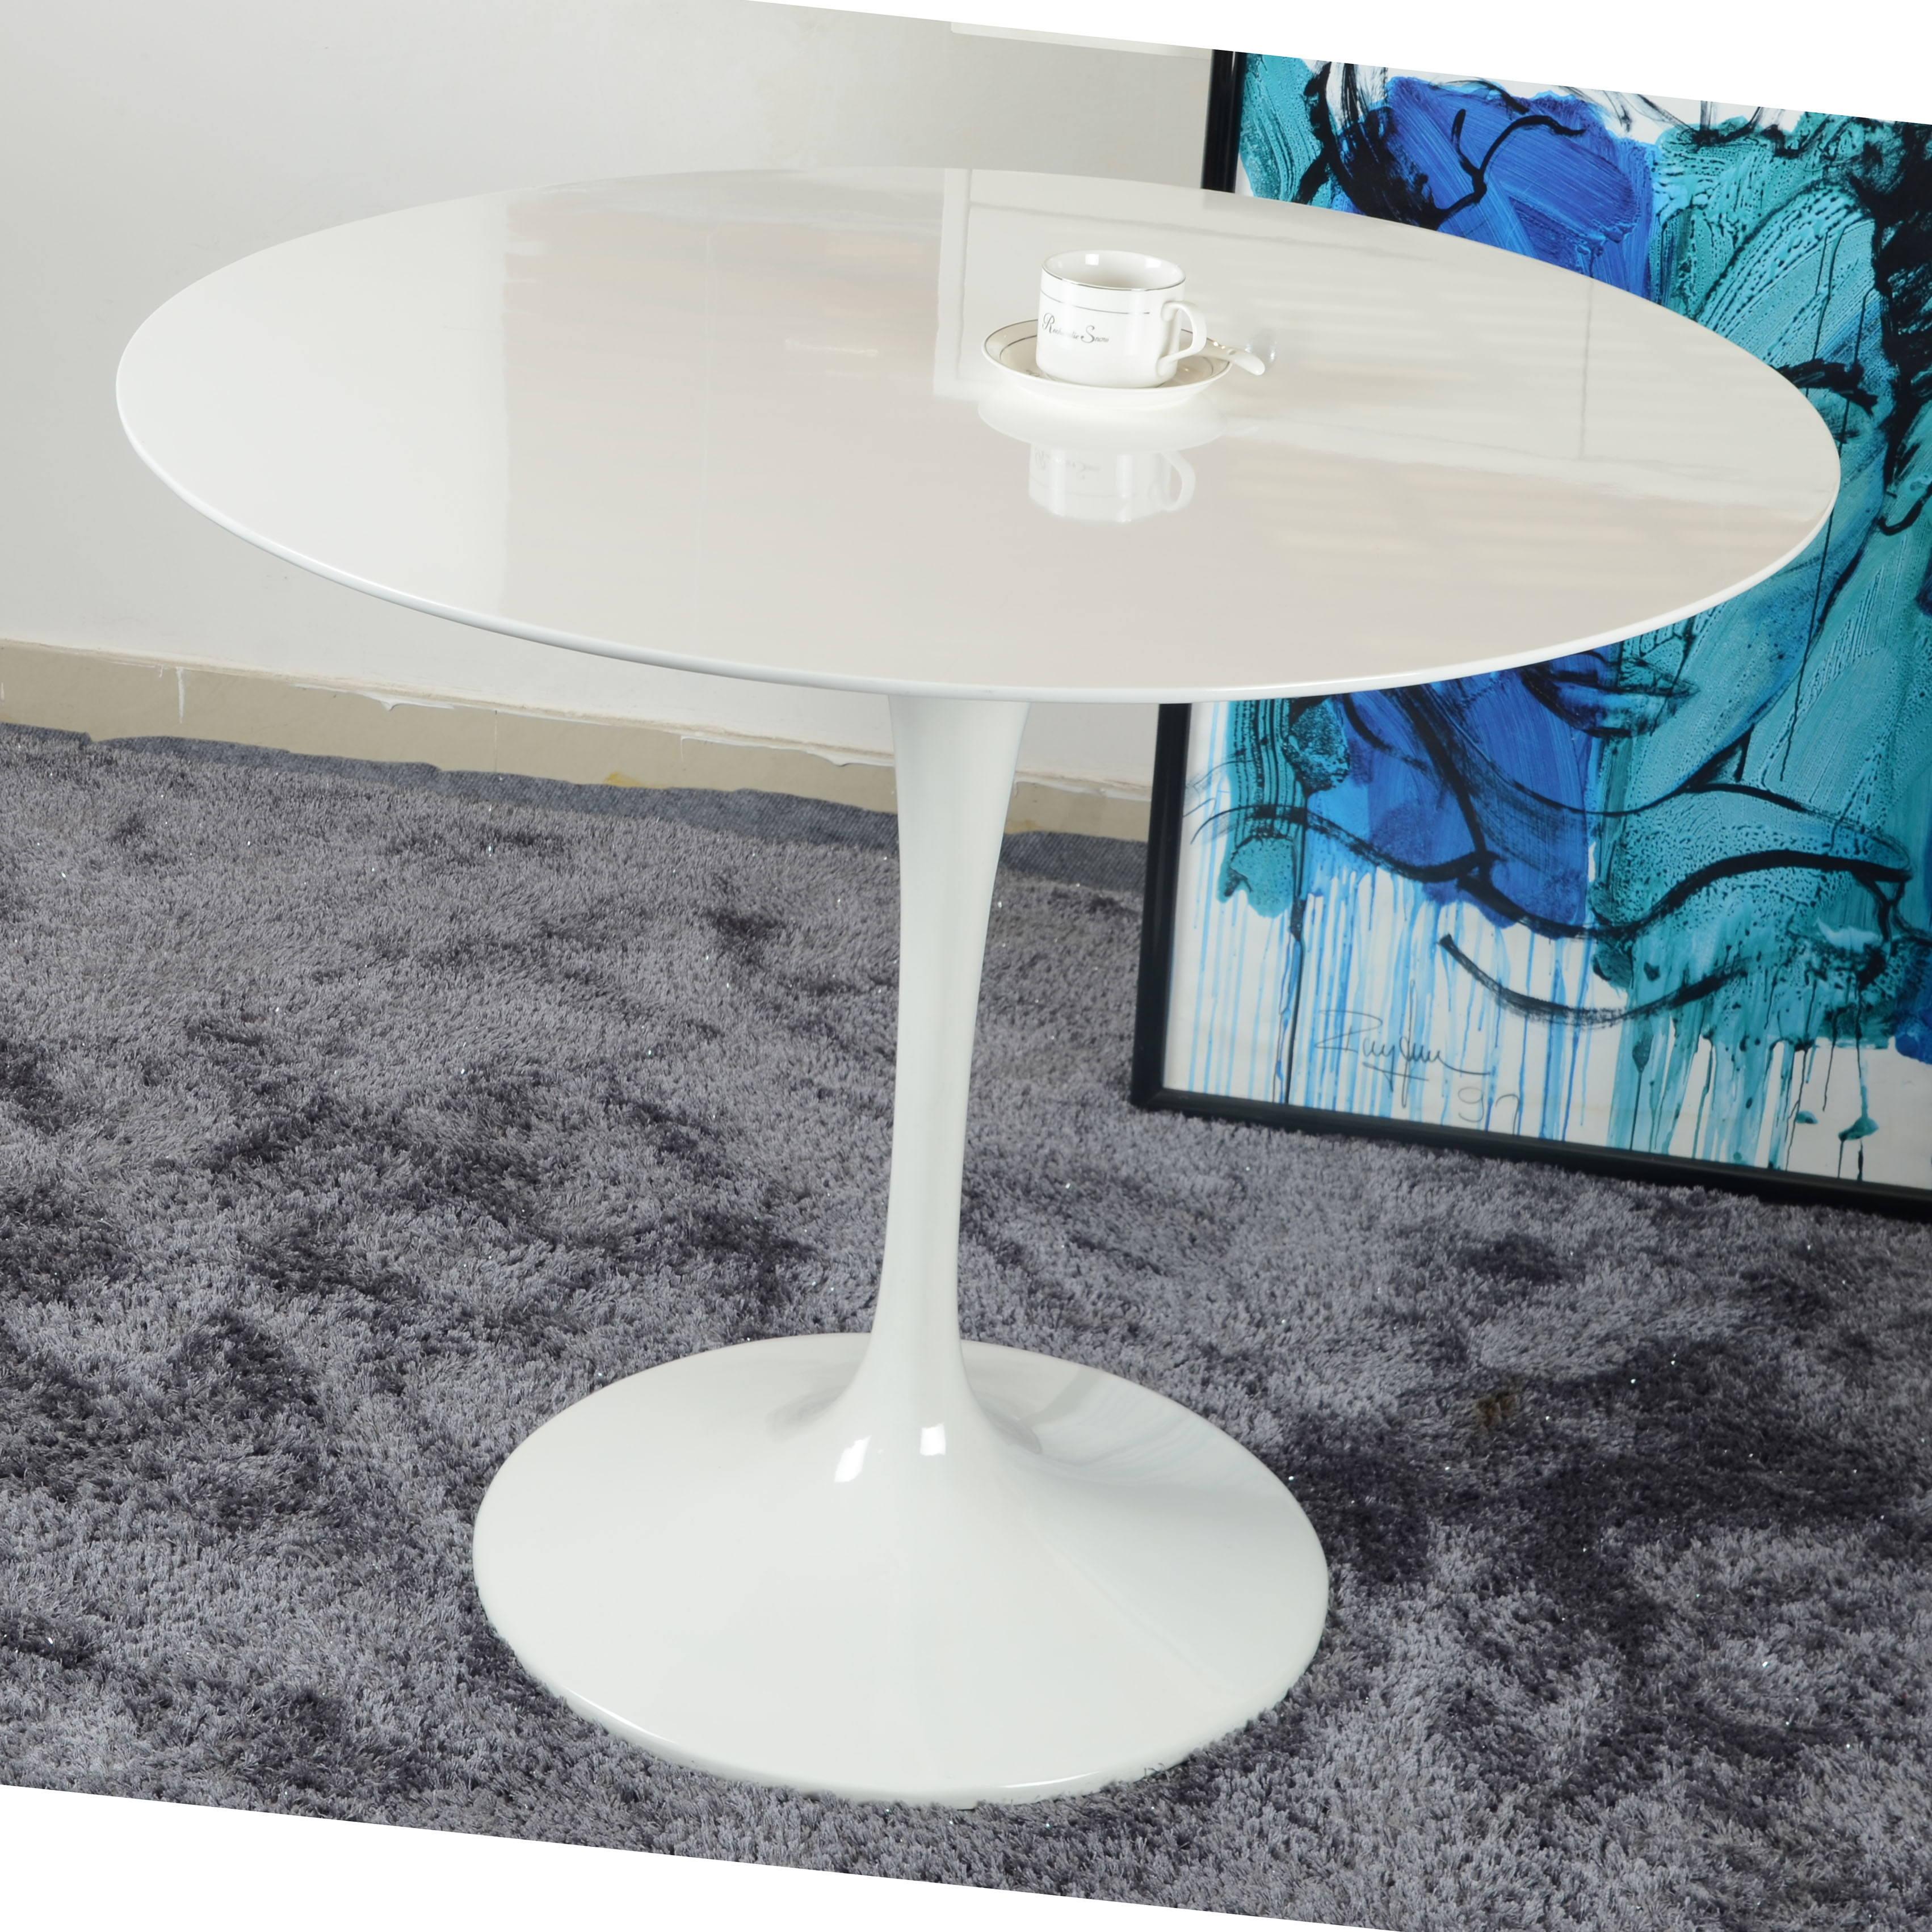 Usd 185 18 Frp Dining Table Outdoor Table Balcony Round Table